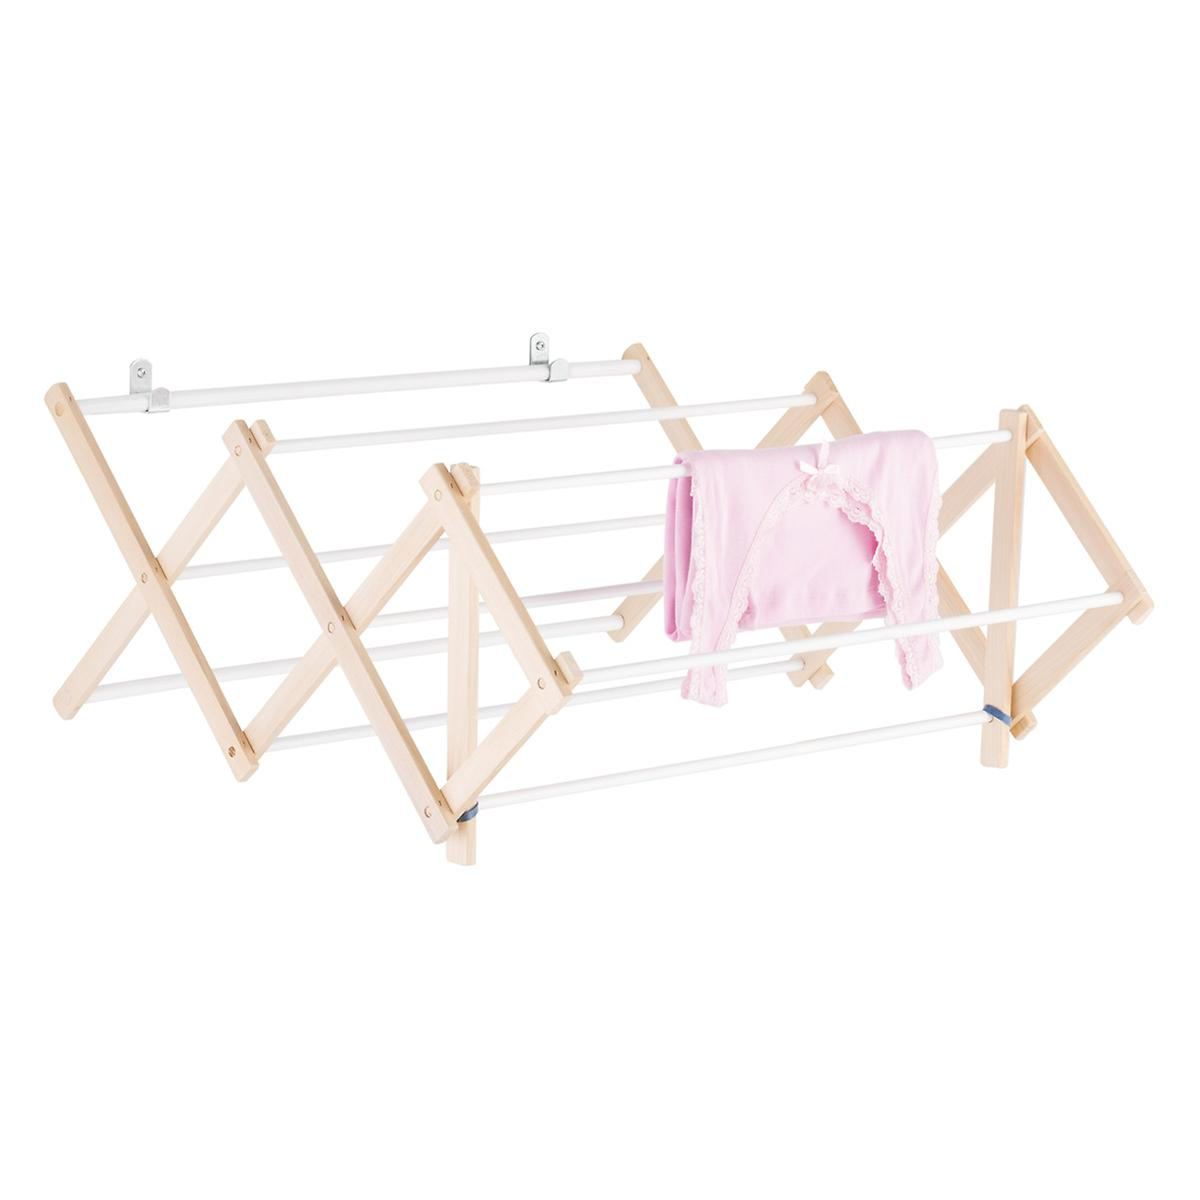 9 dowel wooden wall mounted floor clothes drying rack. Black Bedroom Furniture Sets. Home Design Ideas